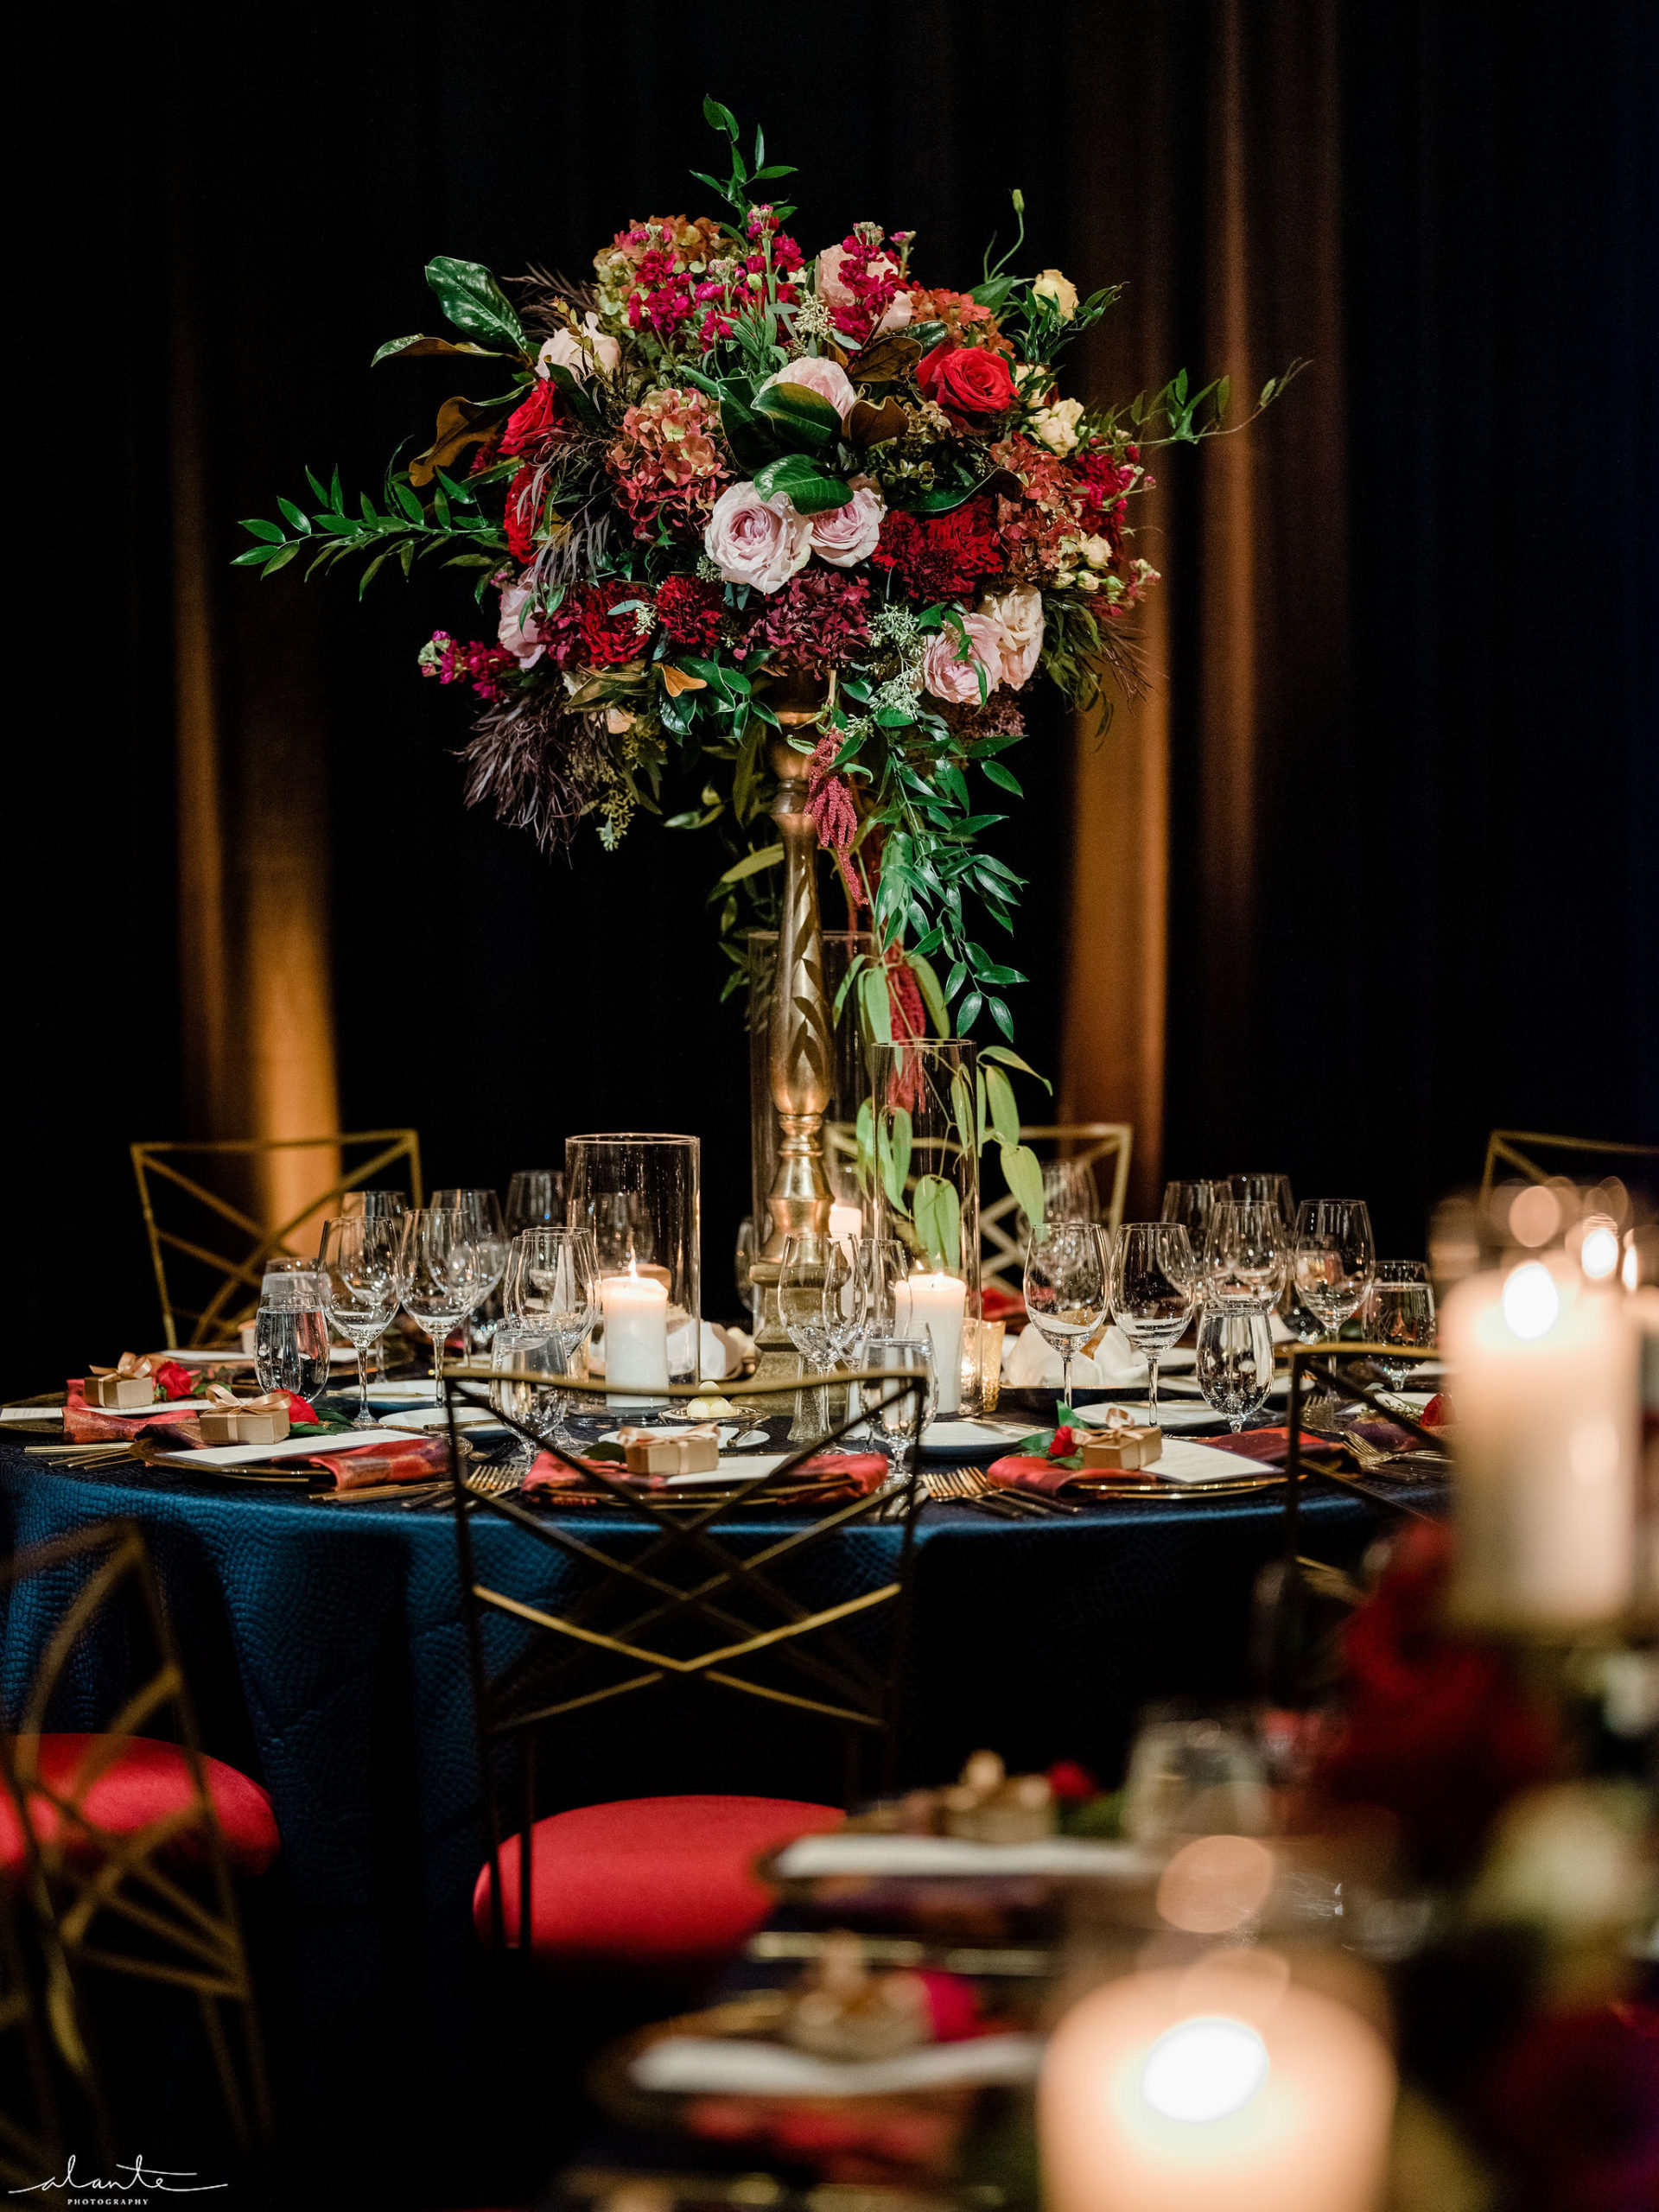 Elevated floral centerpiece in red and blush for a winter wedding reception | Designed by Flora Nova Design Seattle